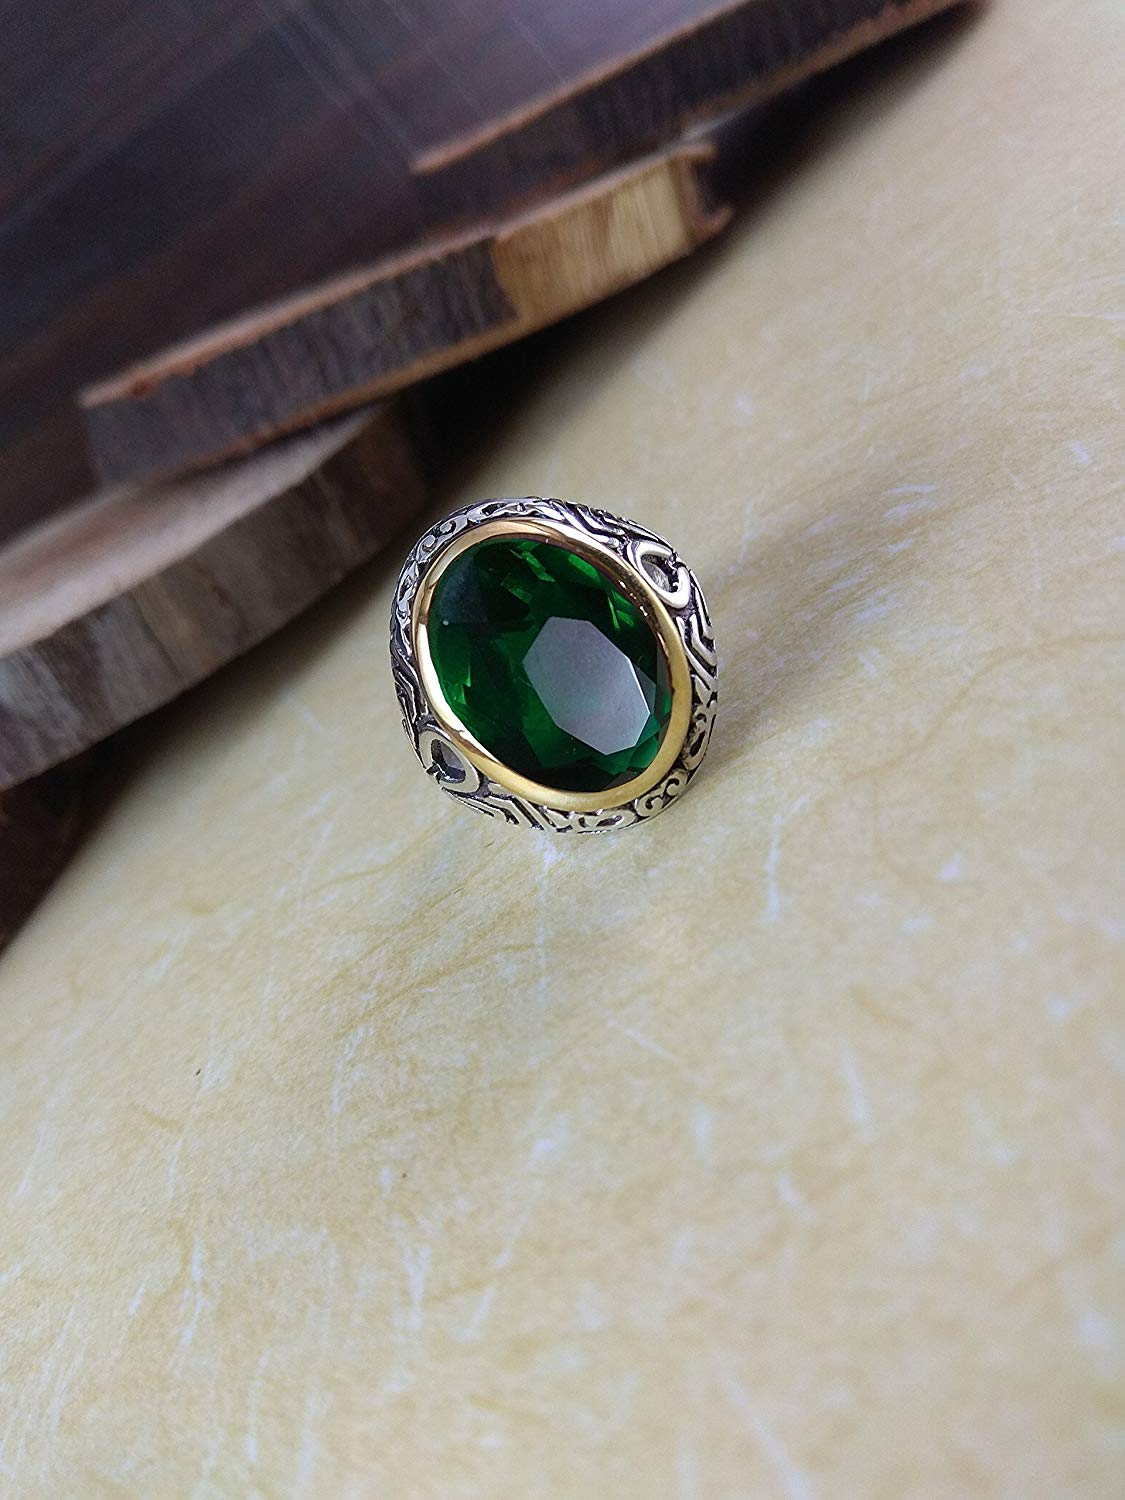 Fine Cut Emerald Ring, 925 Sterling Silver Jewelry, Faceted Oval Emerald Gemstone, Balinese Ring, Mental Healing Gemstone, Handmade Jewelry, August Birthstone Ring, Birthday Gift for Husband, Father